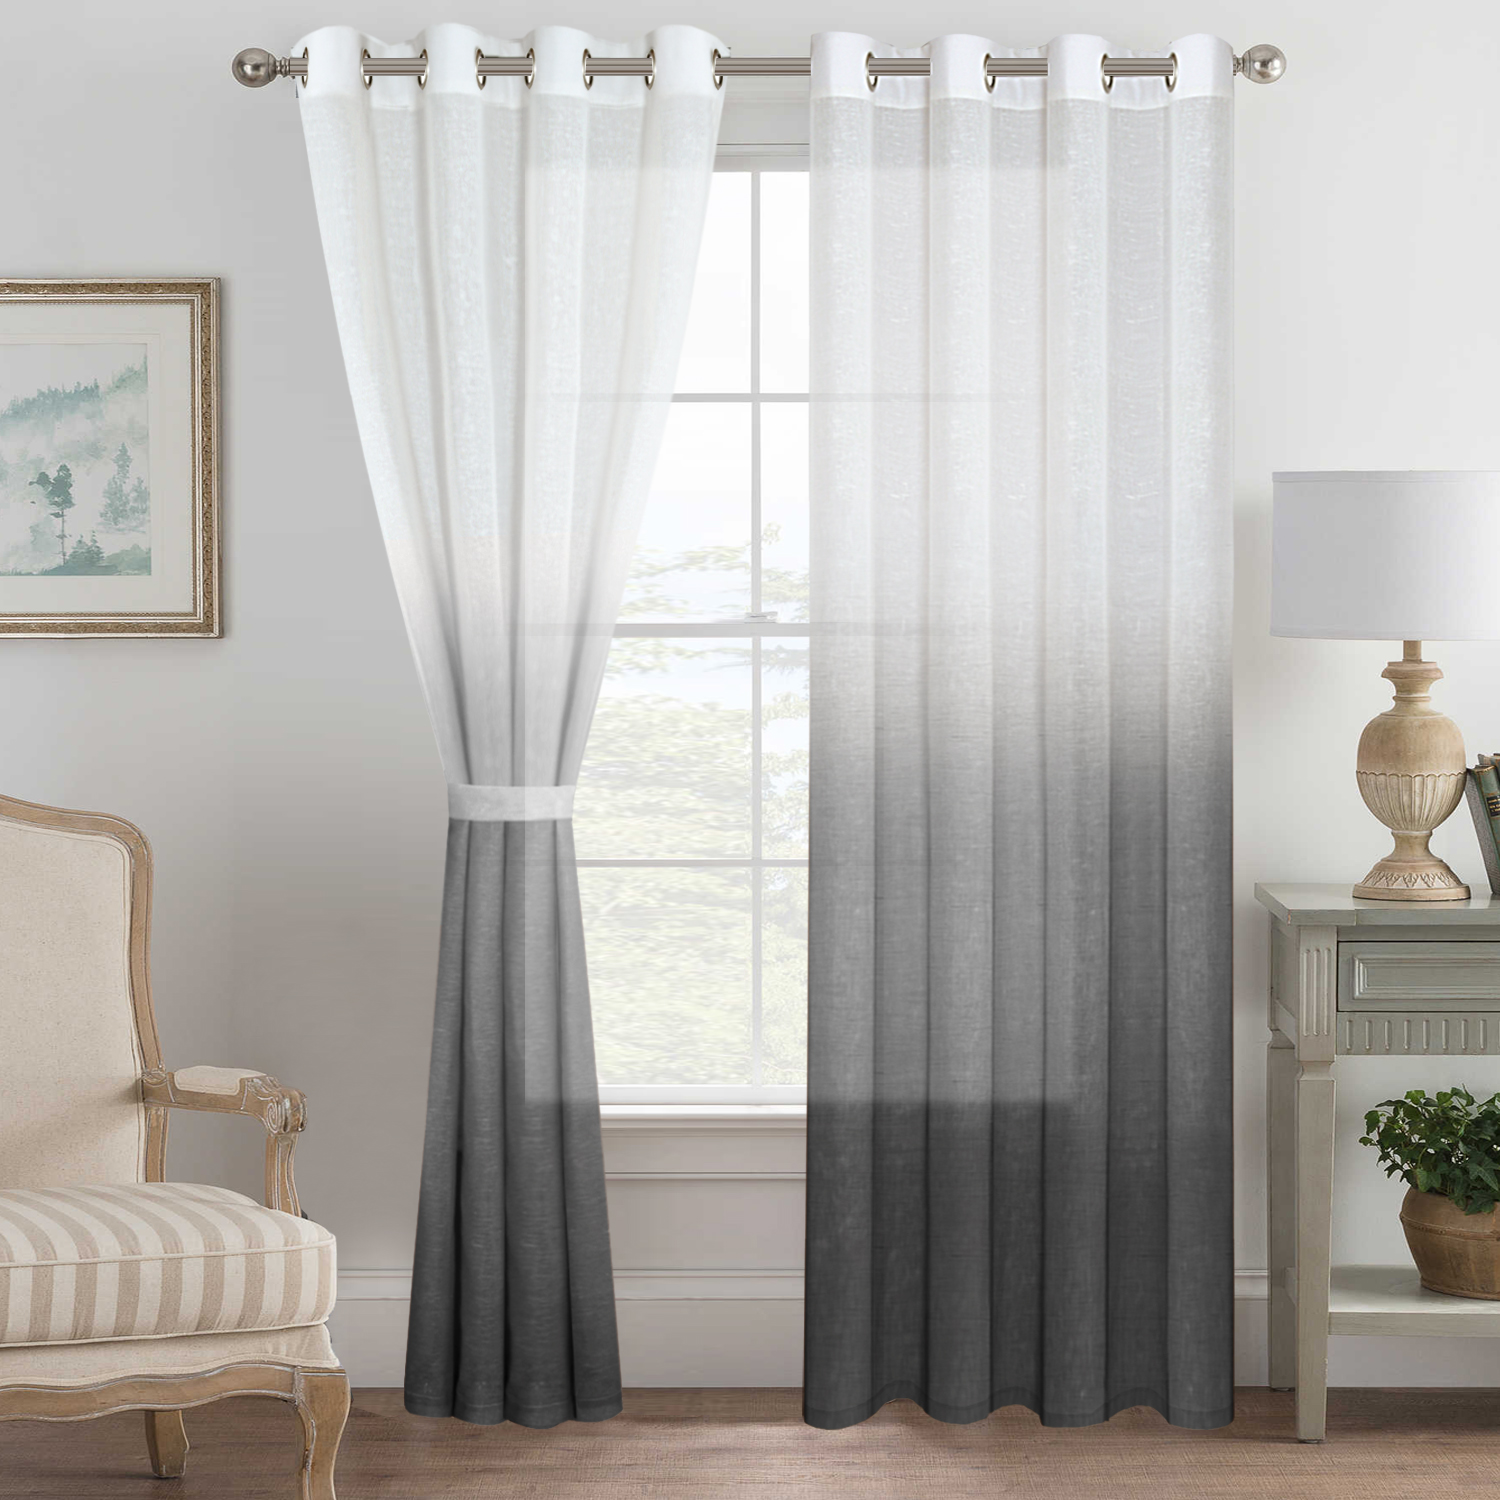 2 Panels Ultra Luxurious Natural Linen Blended Semi Sheer Curtains Breathable And Airy Ombre Curtains Window Treatment With Ring Top For Girls Room With Tie Backs 52x96 Inch Indigo Walmart Com